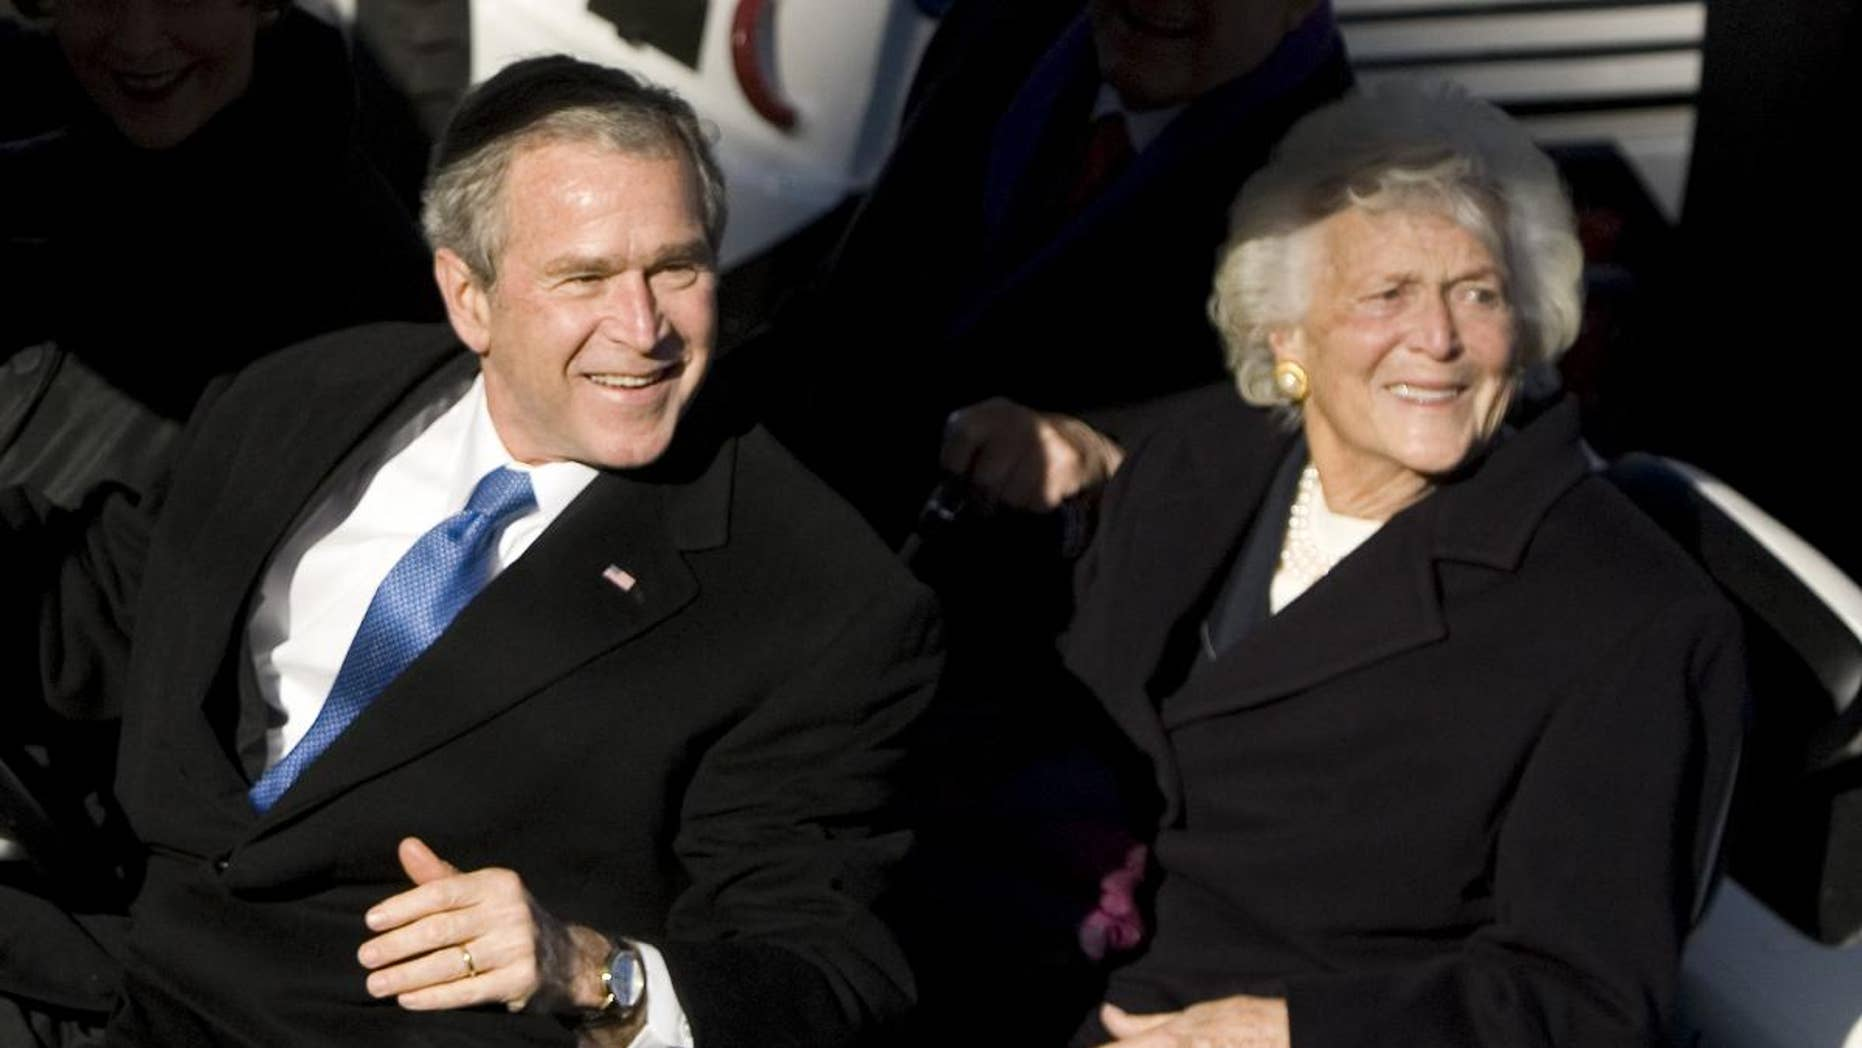 Mother and son on January 10, 2009 / AP Photo